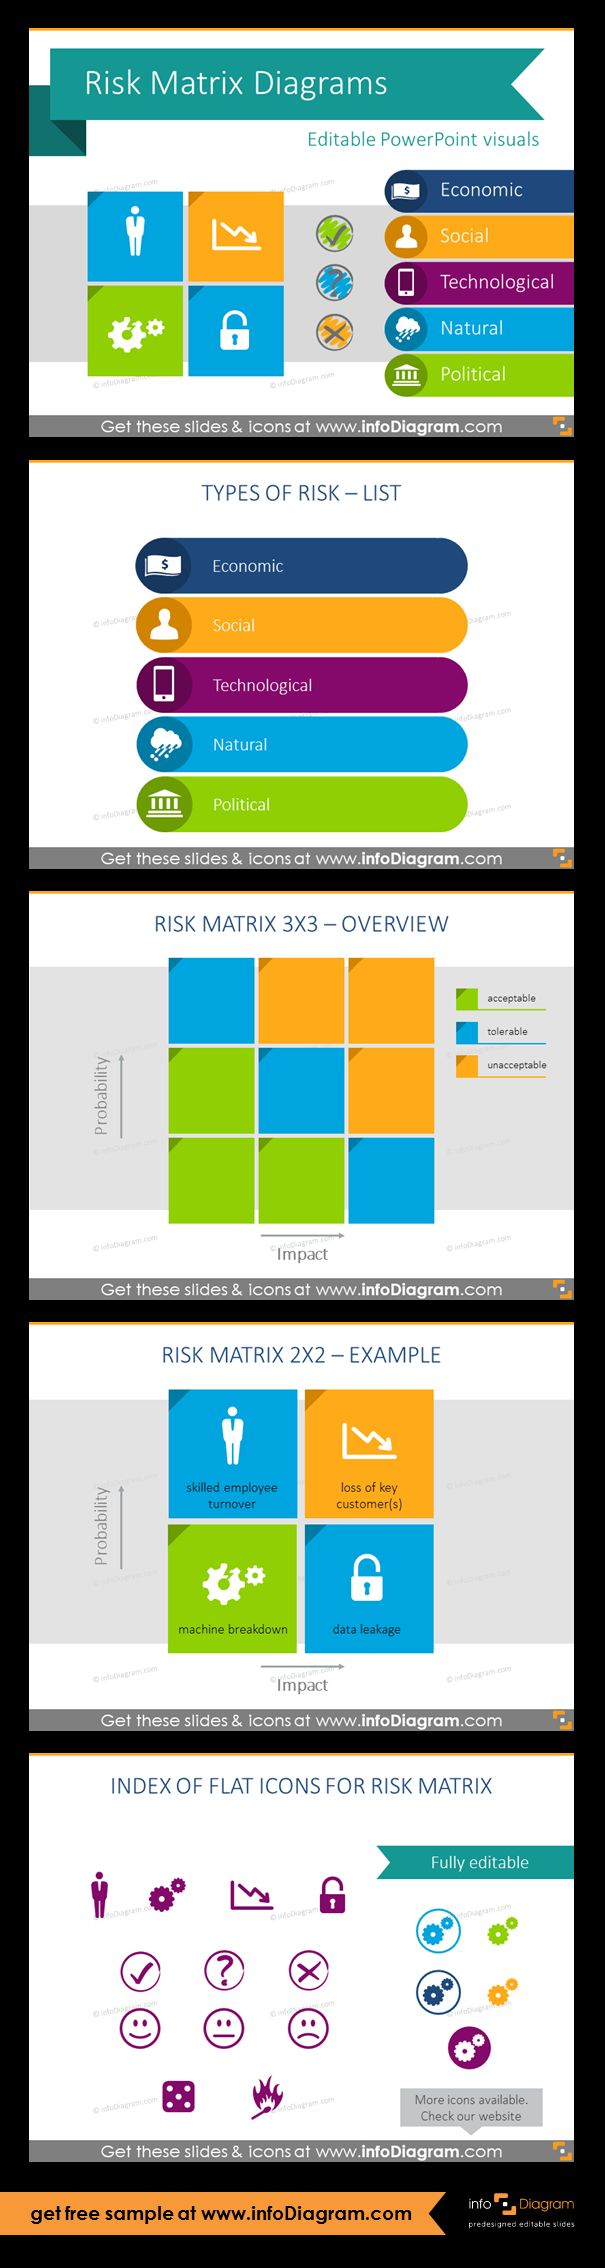 13 matrix PPT slide layouts for expressing Risk levels in two dimensions. This pre-designed PowerPoint visuals can be used to illustrate risk estimation by severity and probability levels. List chart for presenting types of risk; 3x3 matrix overview; 2x2 matrix template; flat icons set. Risk matrix helps businesses to define the level of risk, therefore assist management decision making and plan right strategy and activities to mitigate those risks.